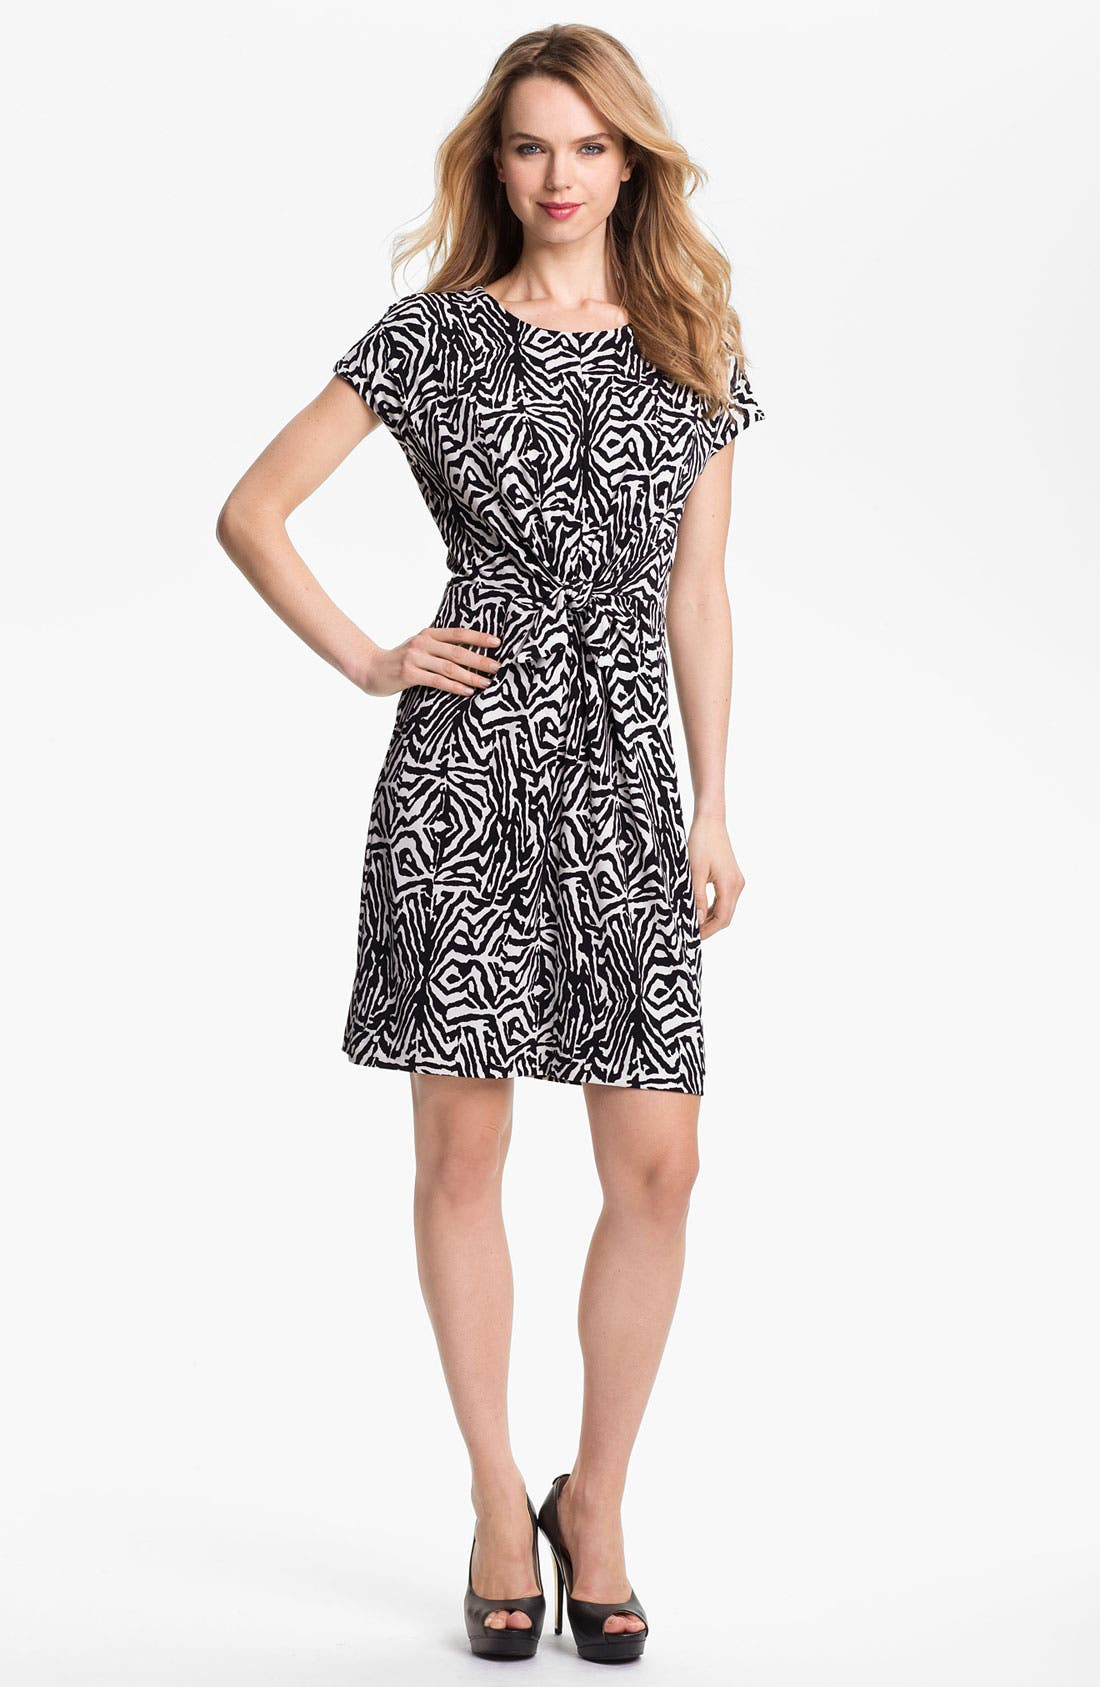 Alternate Image 1 Selected - Vince Camuto Tie Front Print Dress